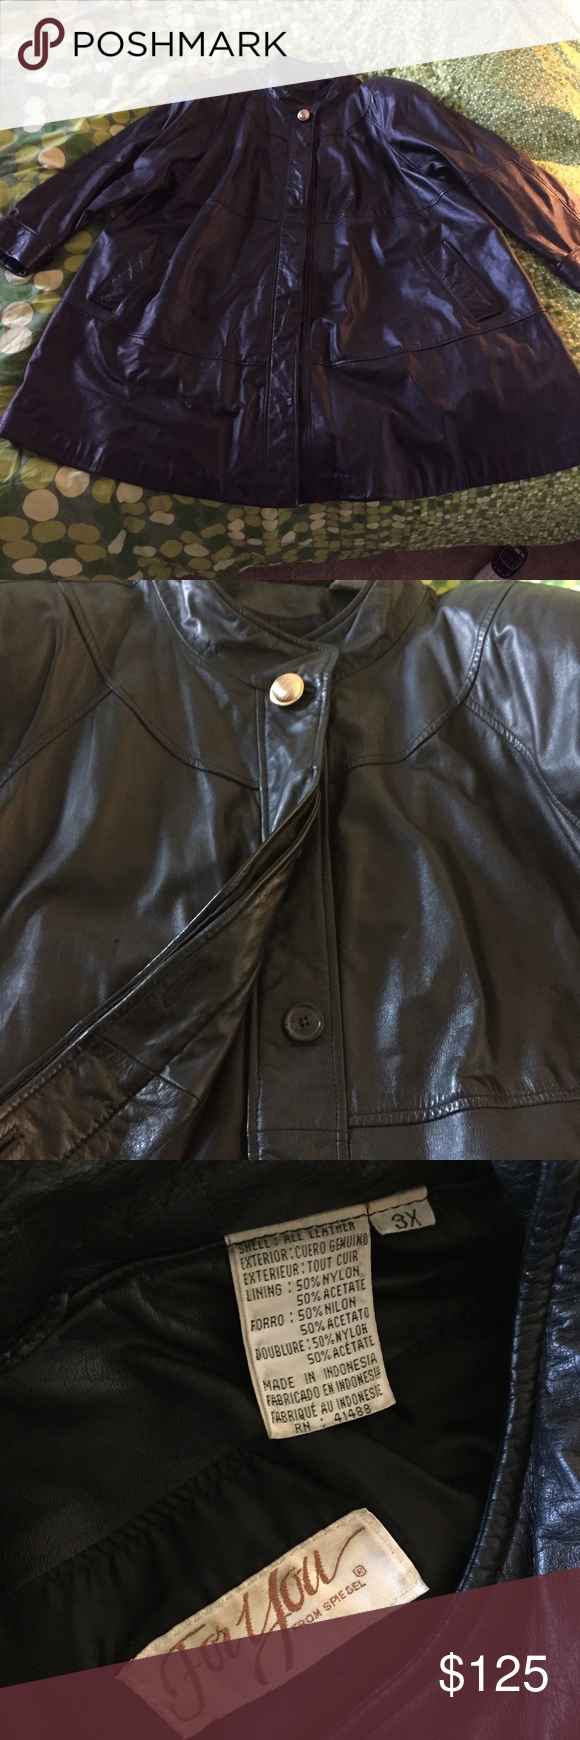 Genuine Leather Jacket Excellent used condition!!! Beautifully detailed genuine leather coat! Size 3XL FOR YOU by SPIEGEL Spiegel Jackets & Coats